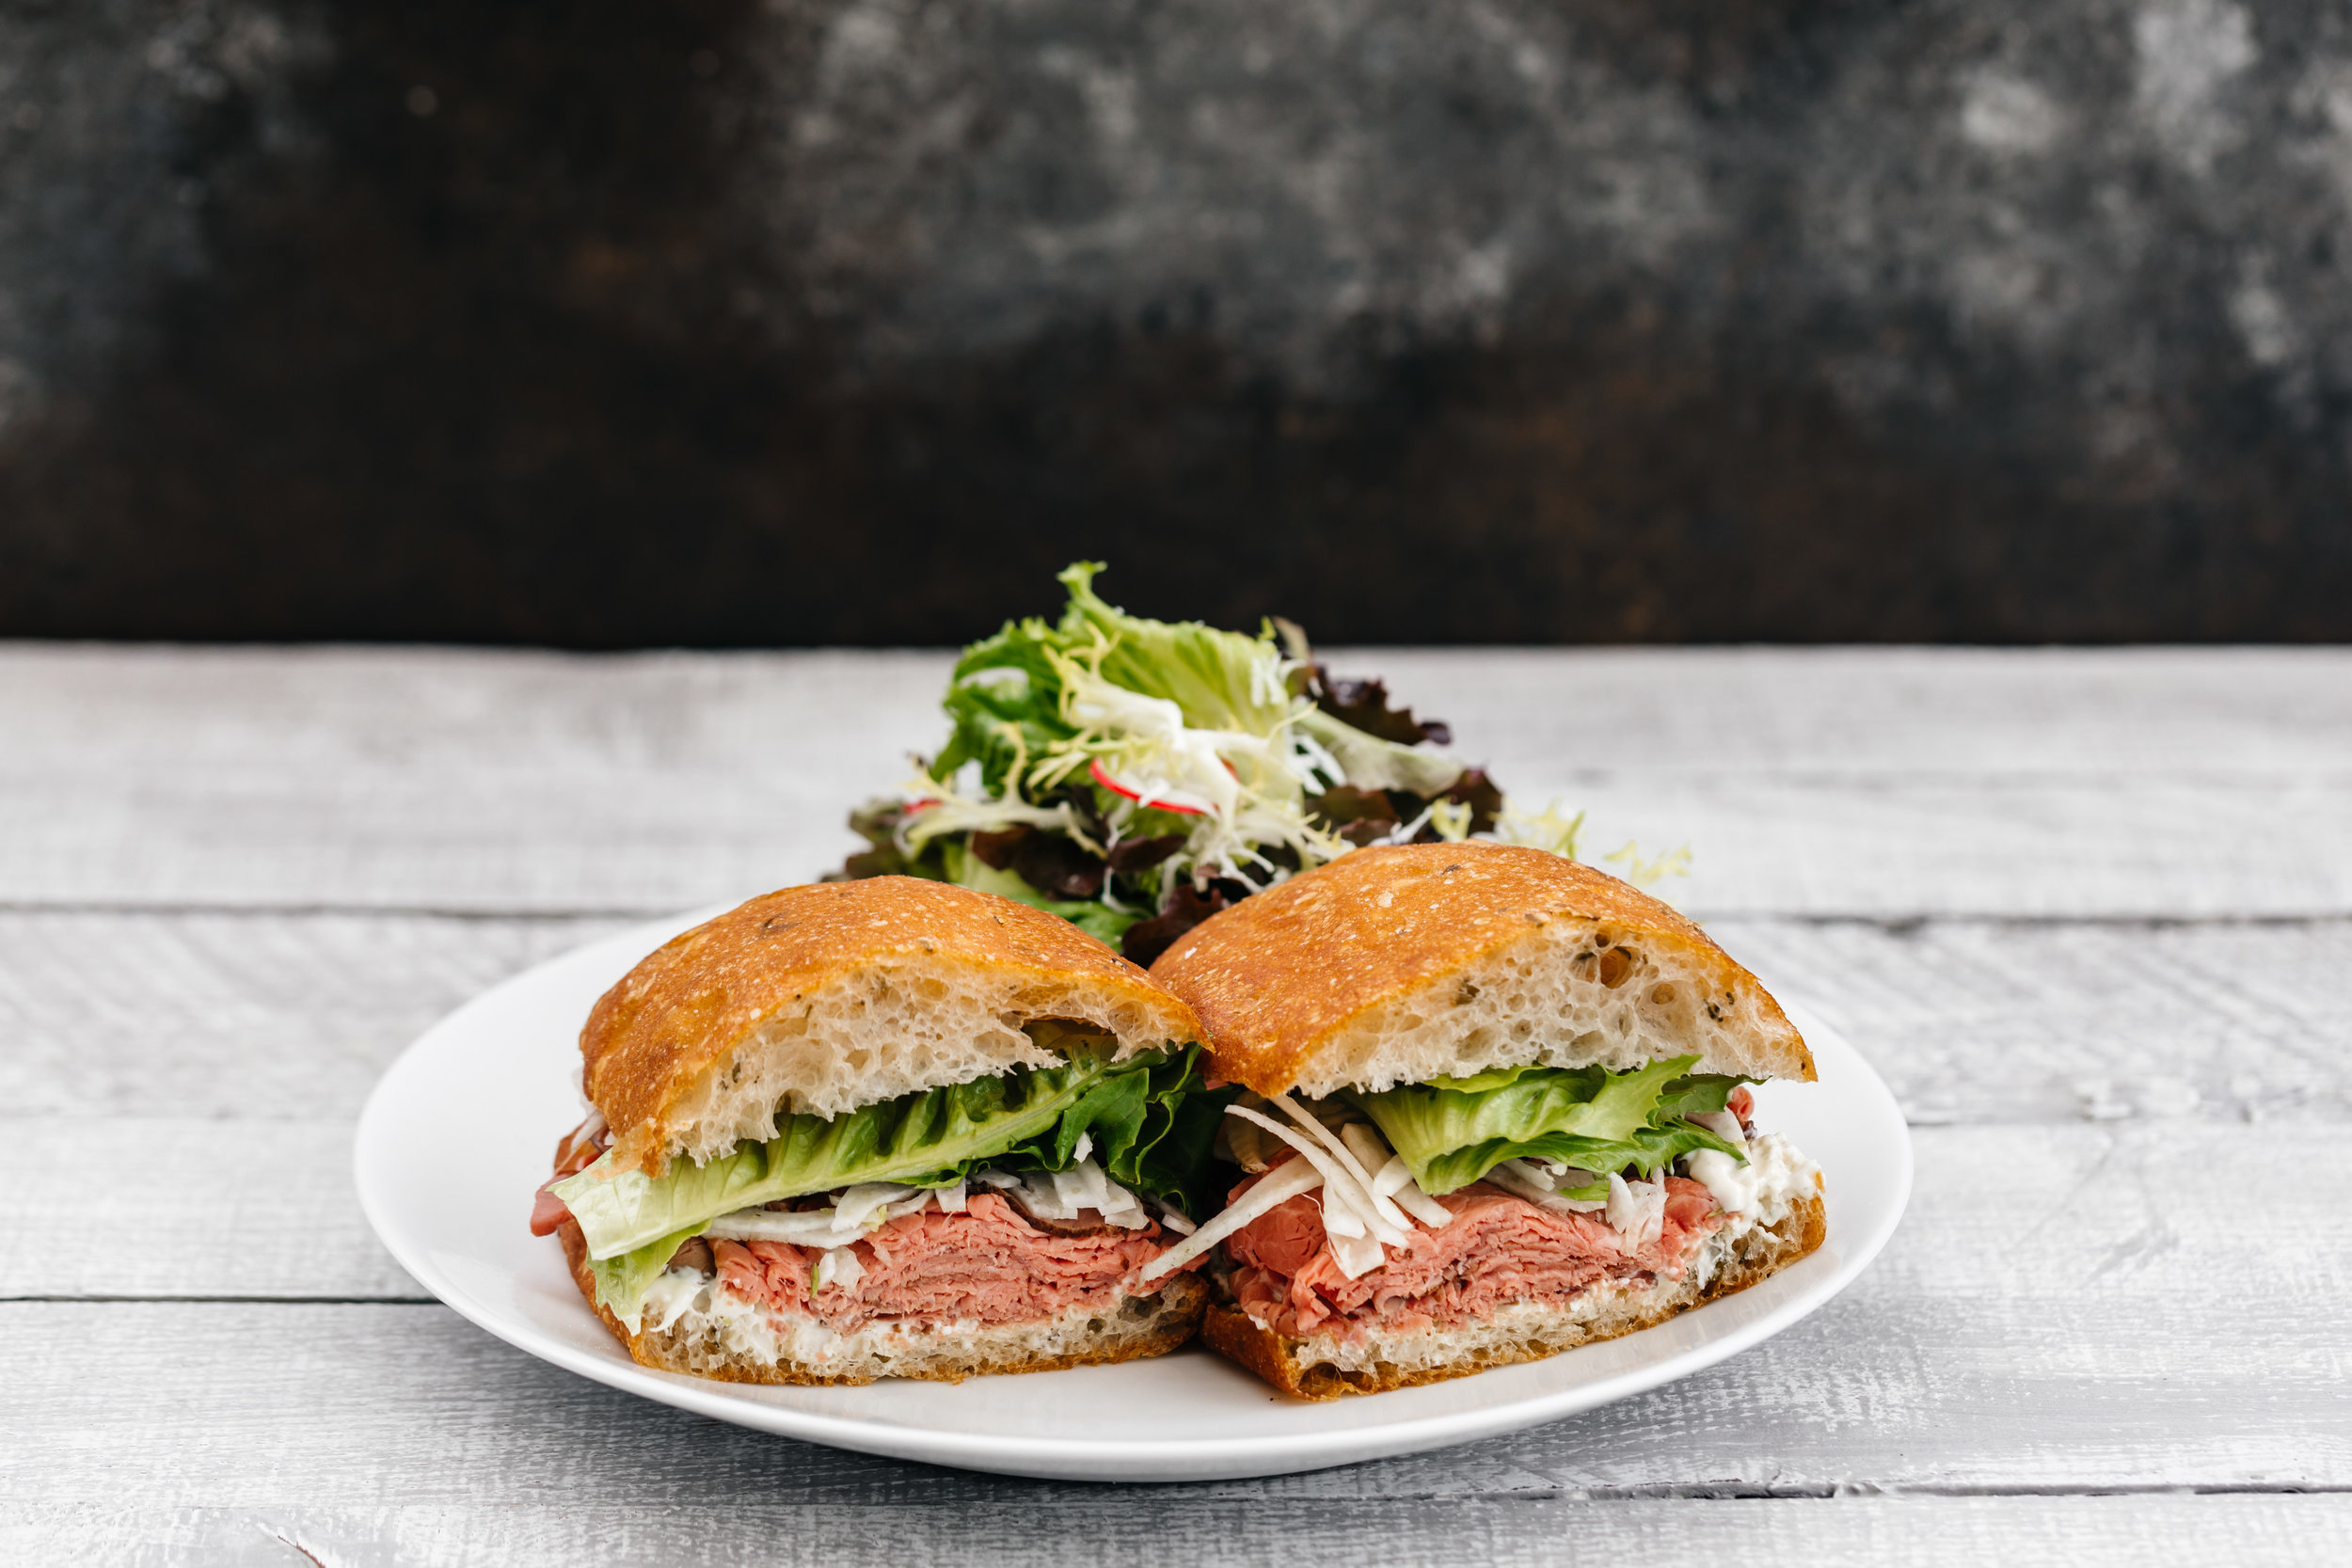 Sandwich Boxed Lunches Starting at $18/PERSON